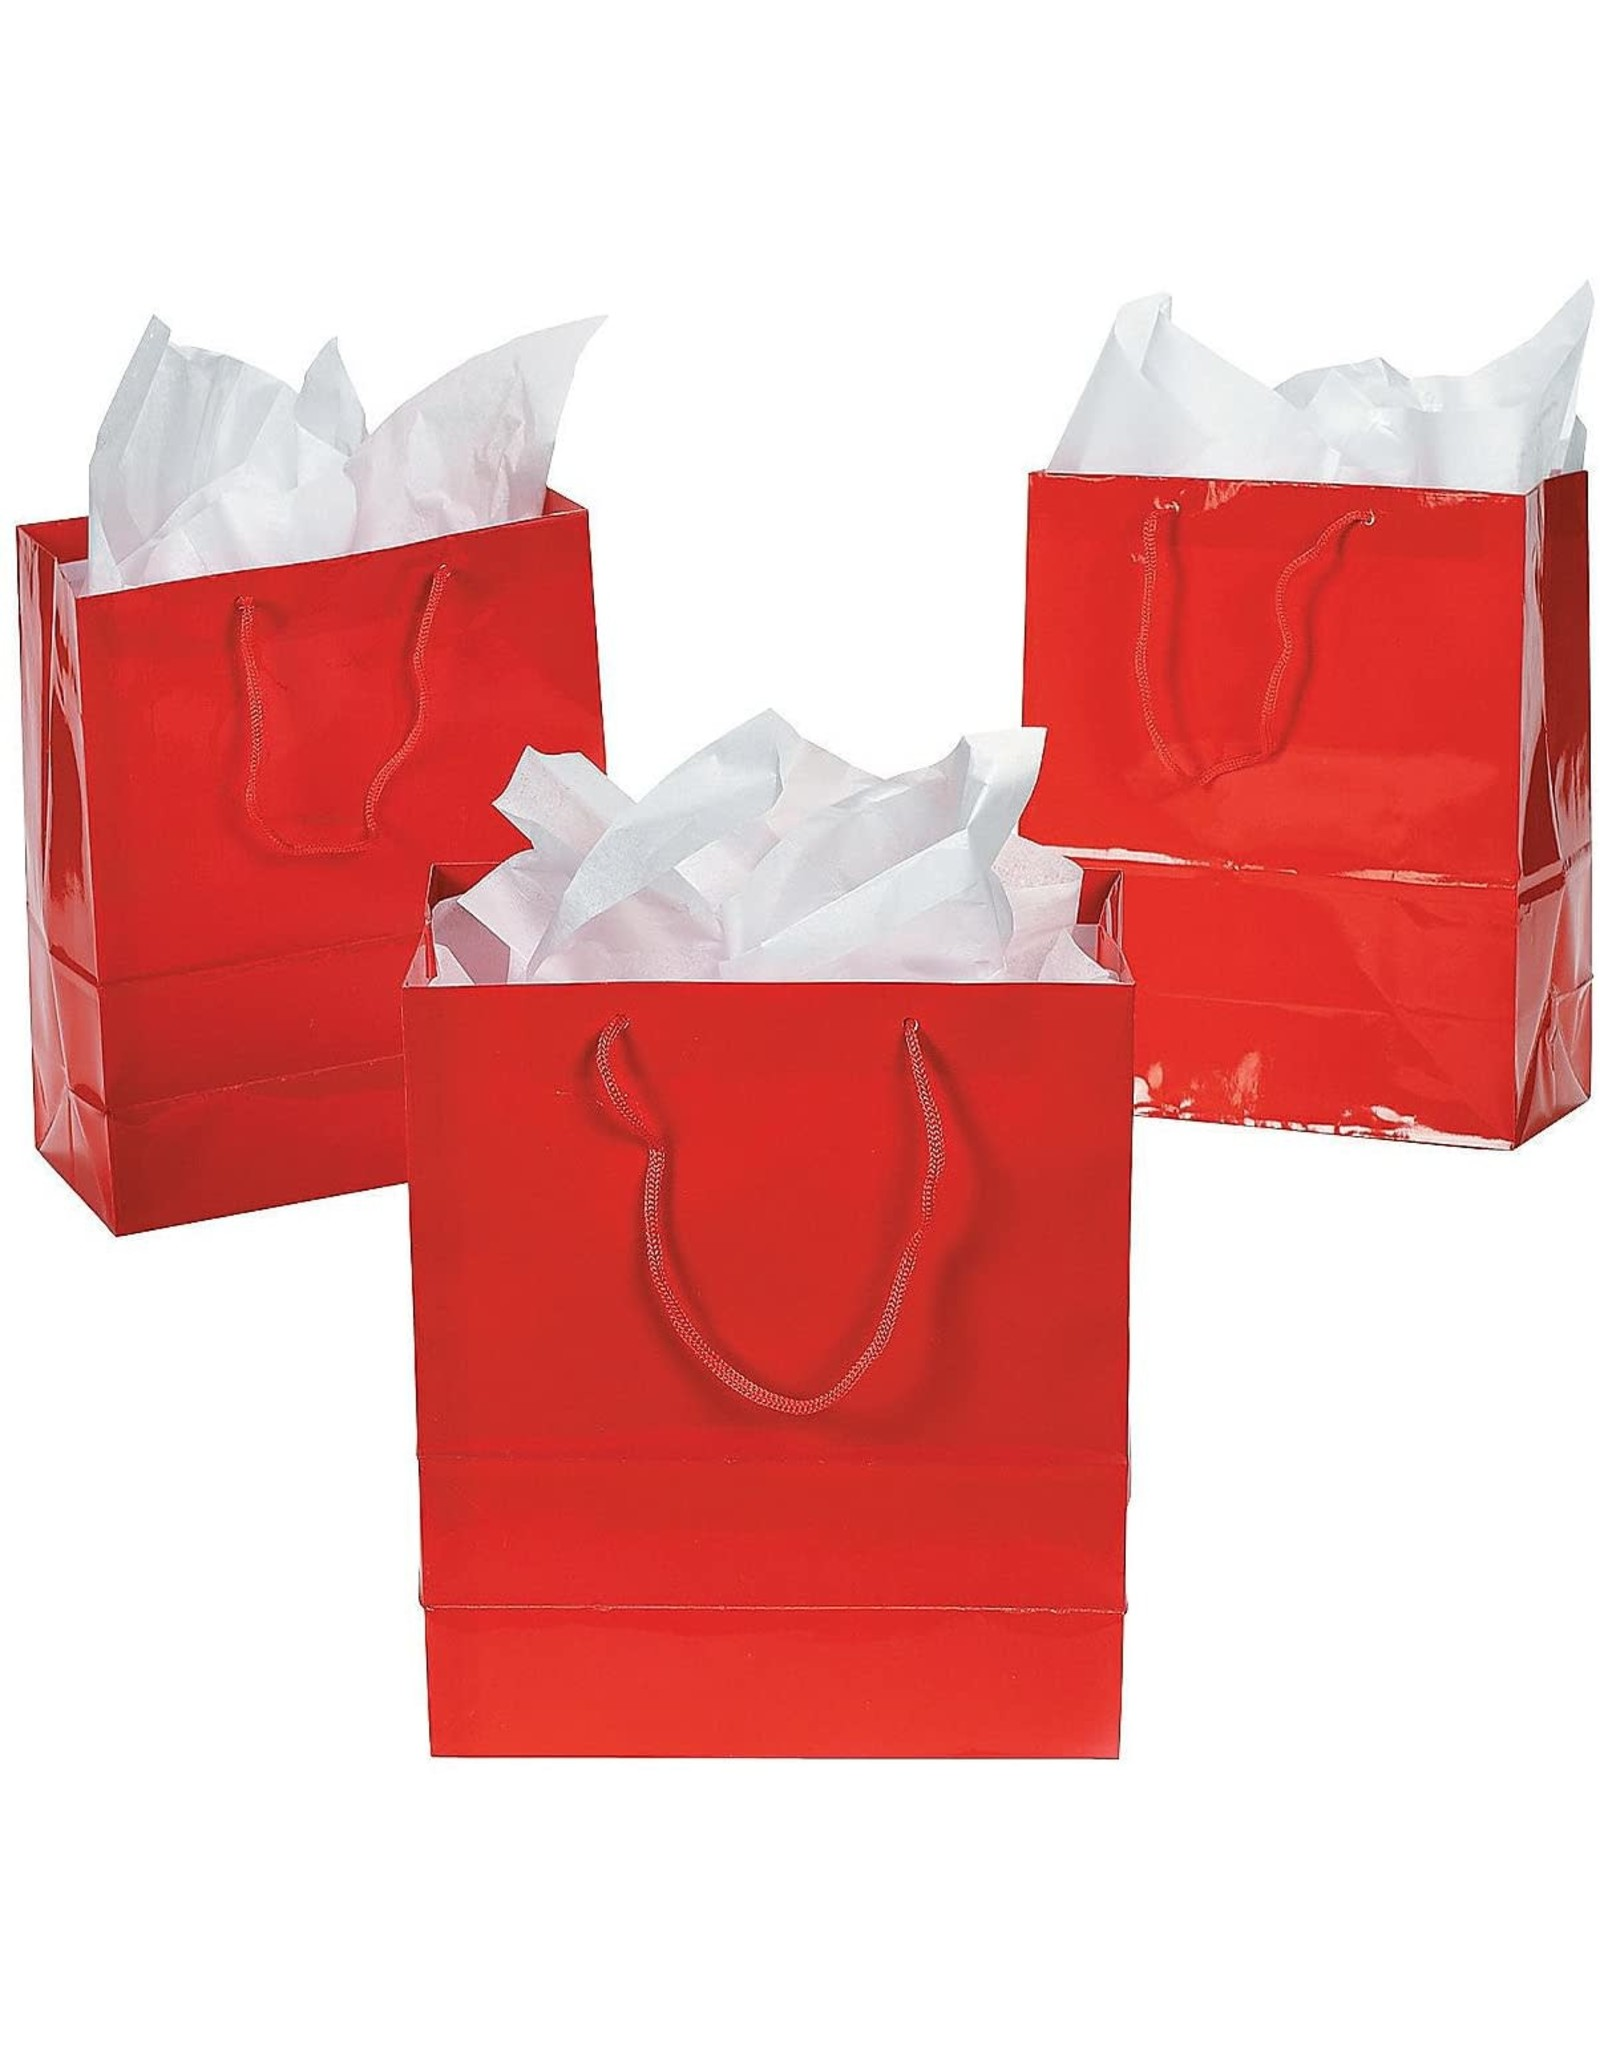 SMALL SURPRISE GIFT BAGS FOR THEM